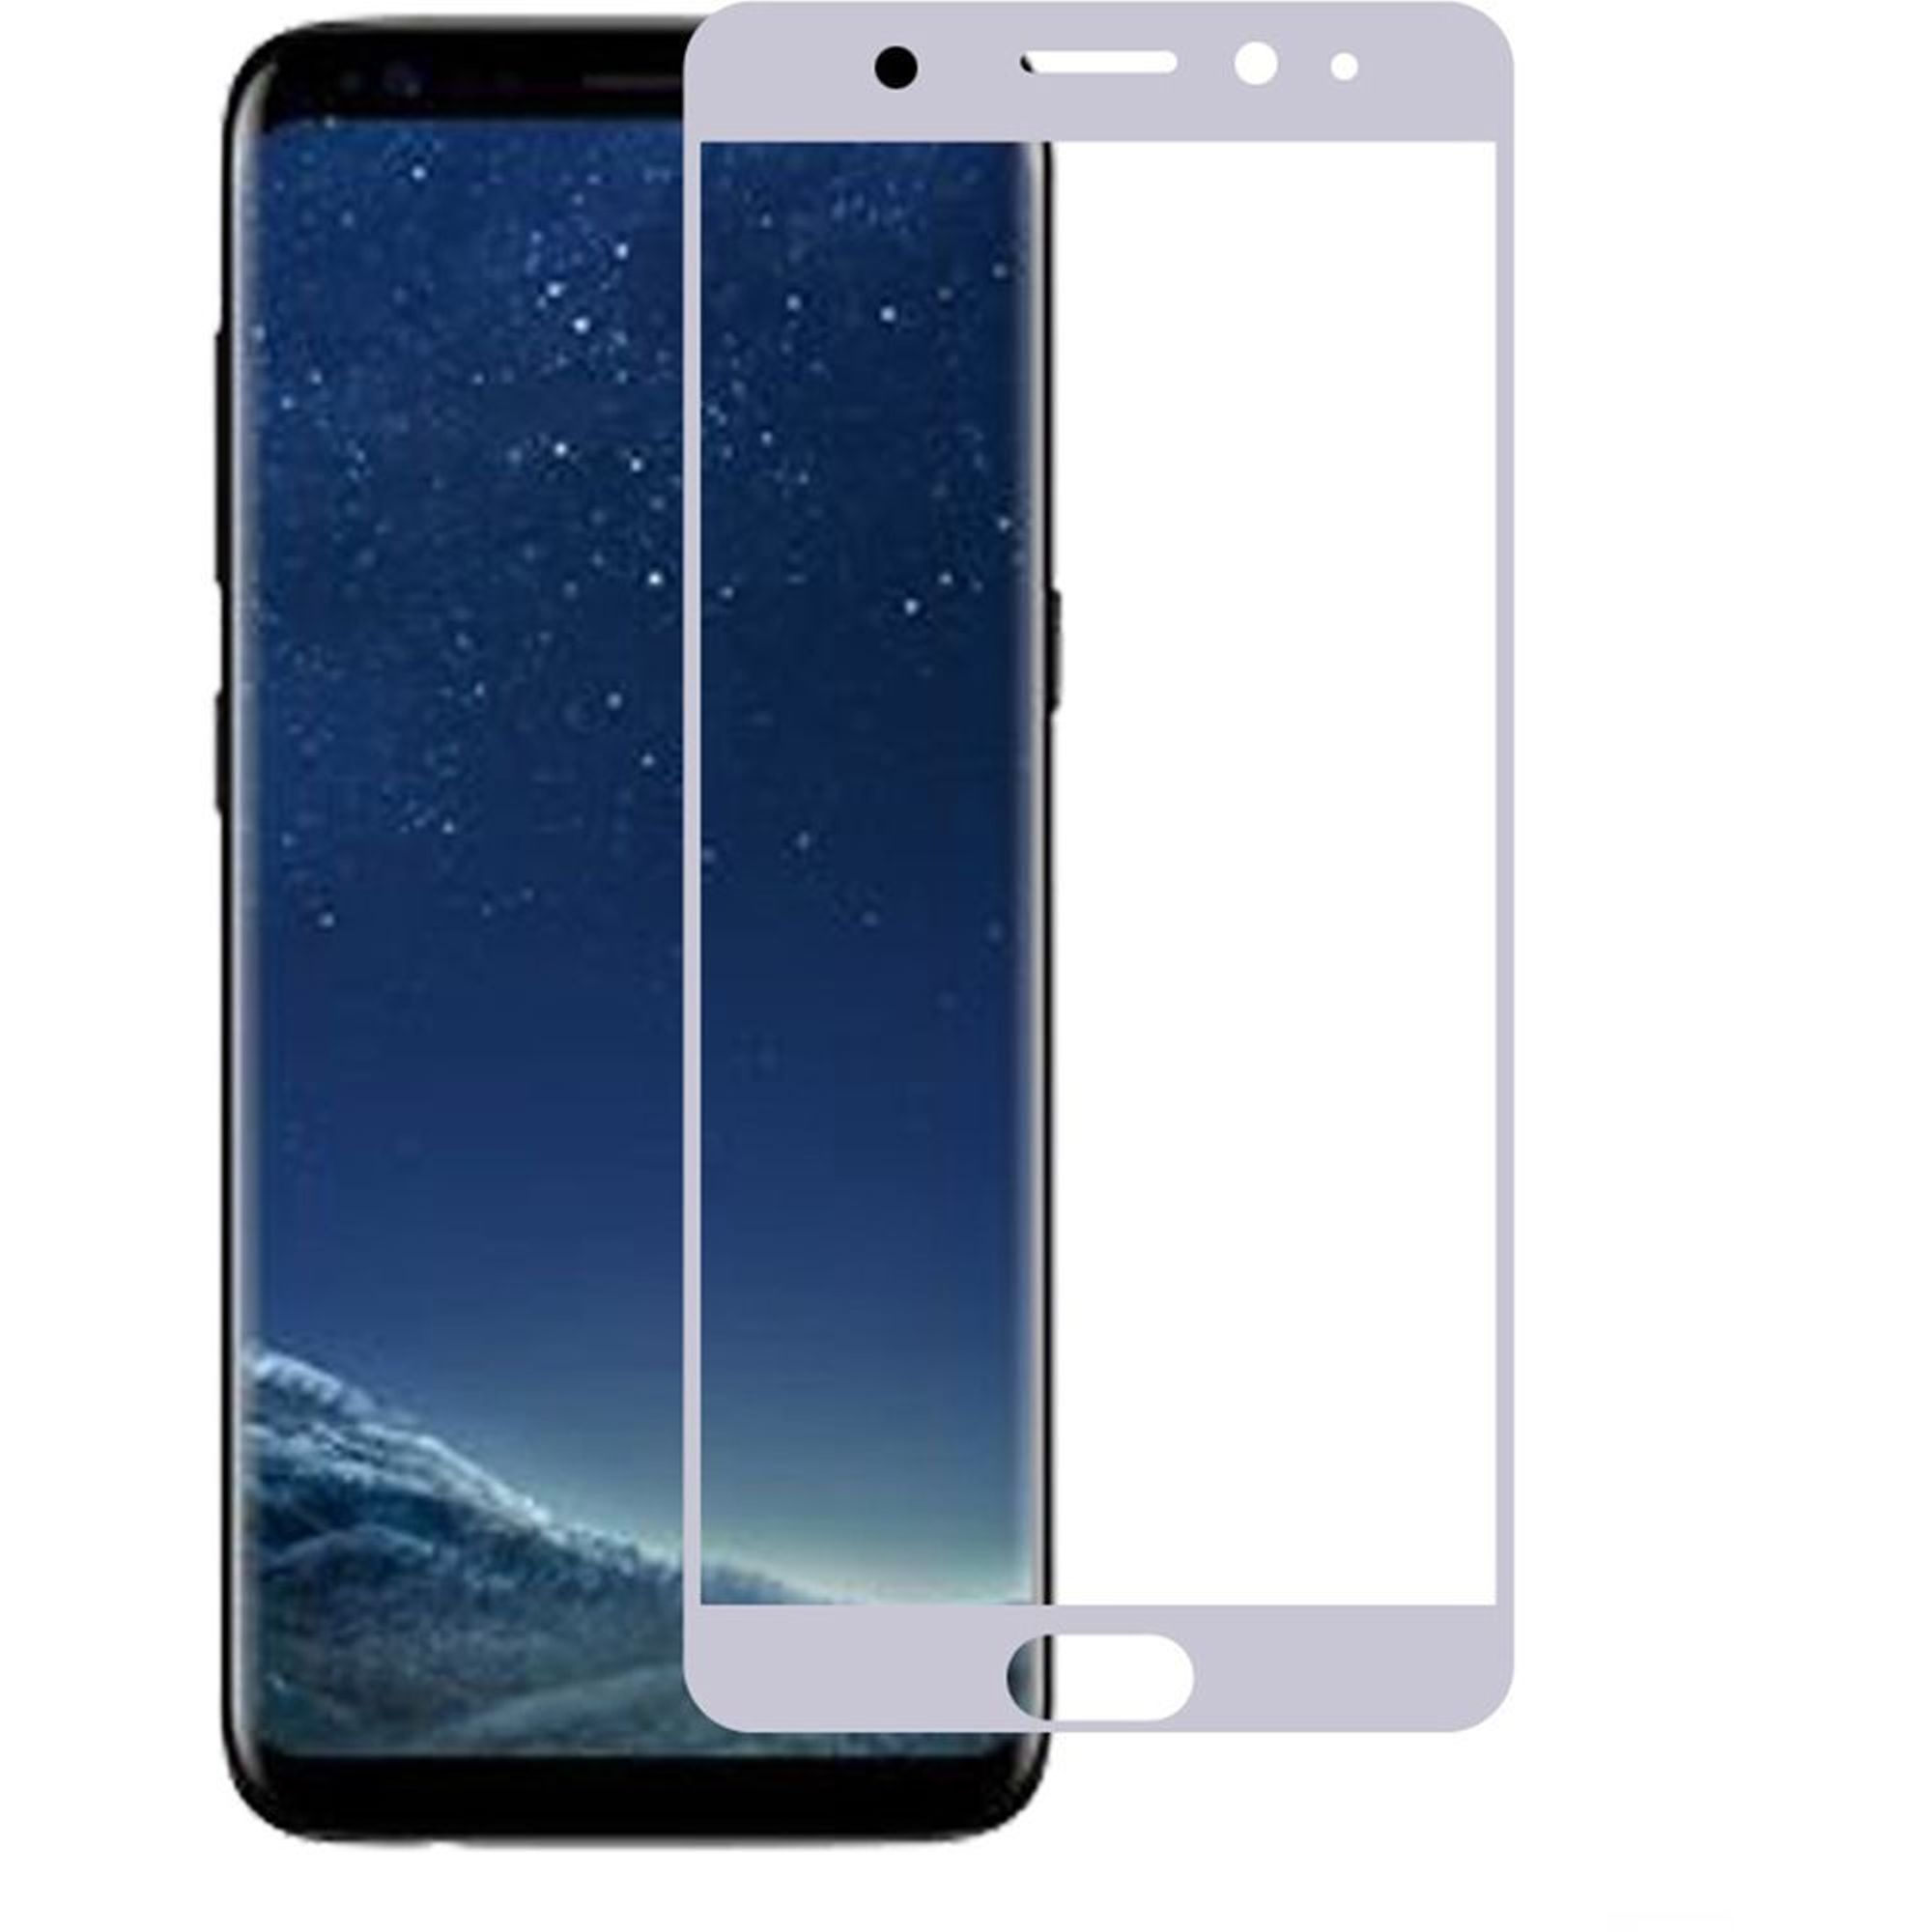 Samsung Galaxy S8 glass screen protector by Insten Clear Tempered Glass Screen Protector Film Cover For Samsung Galaxy S8, Silver